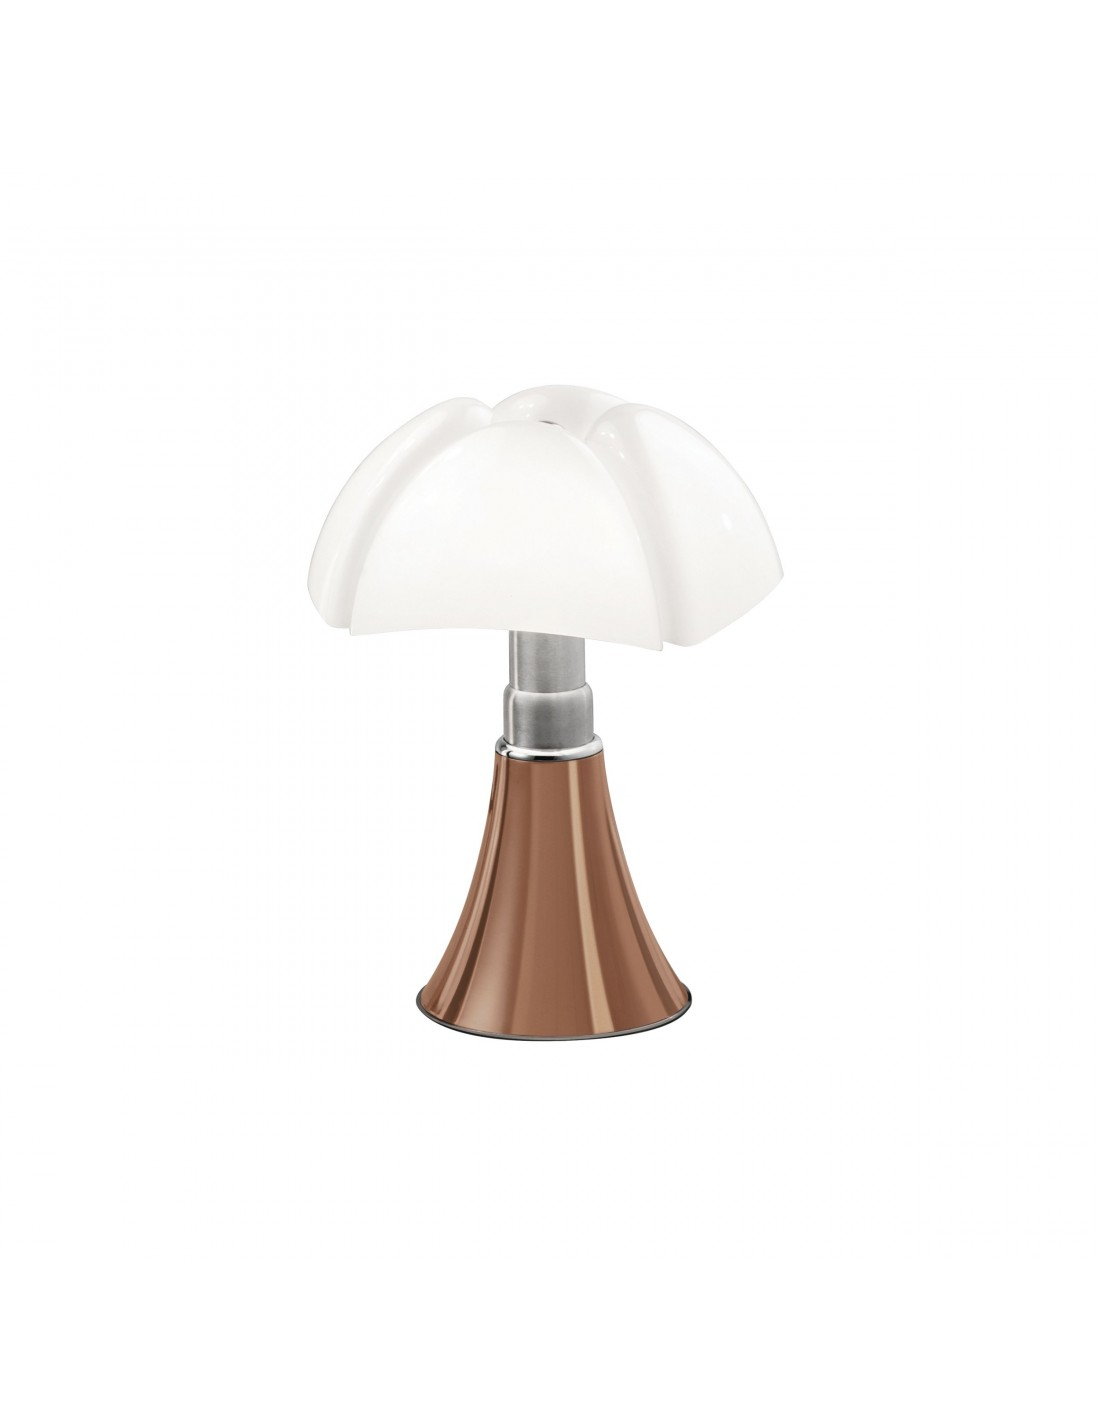 Lampe de table Mini pipistrello Cuivre vue d'ensemble